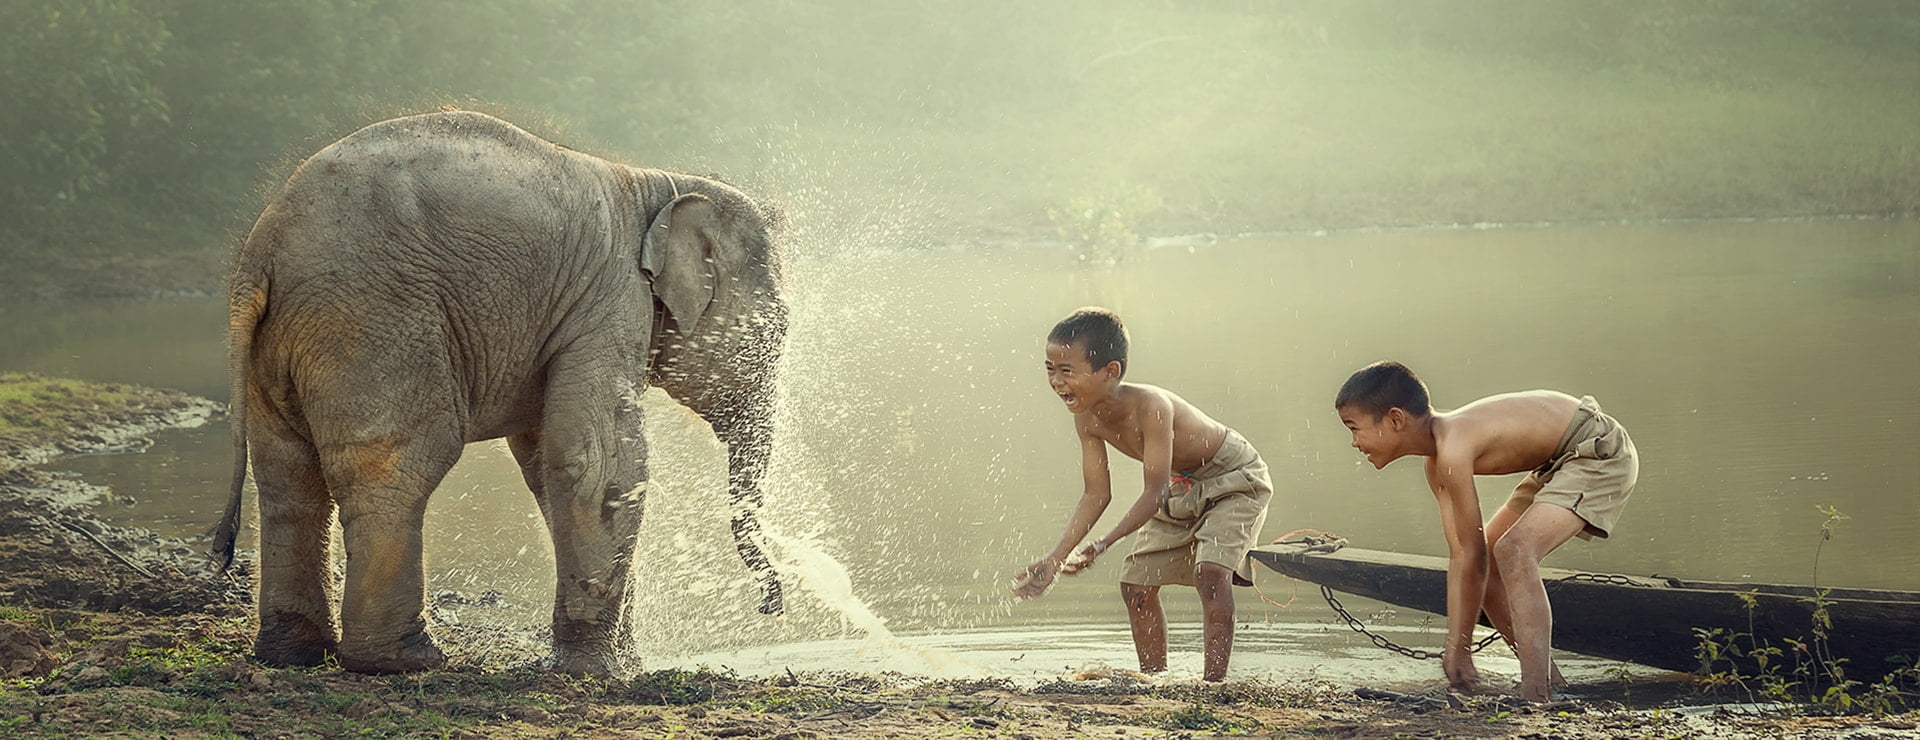 Boys playing with elephant in Cambodia